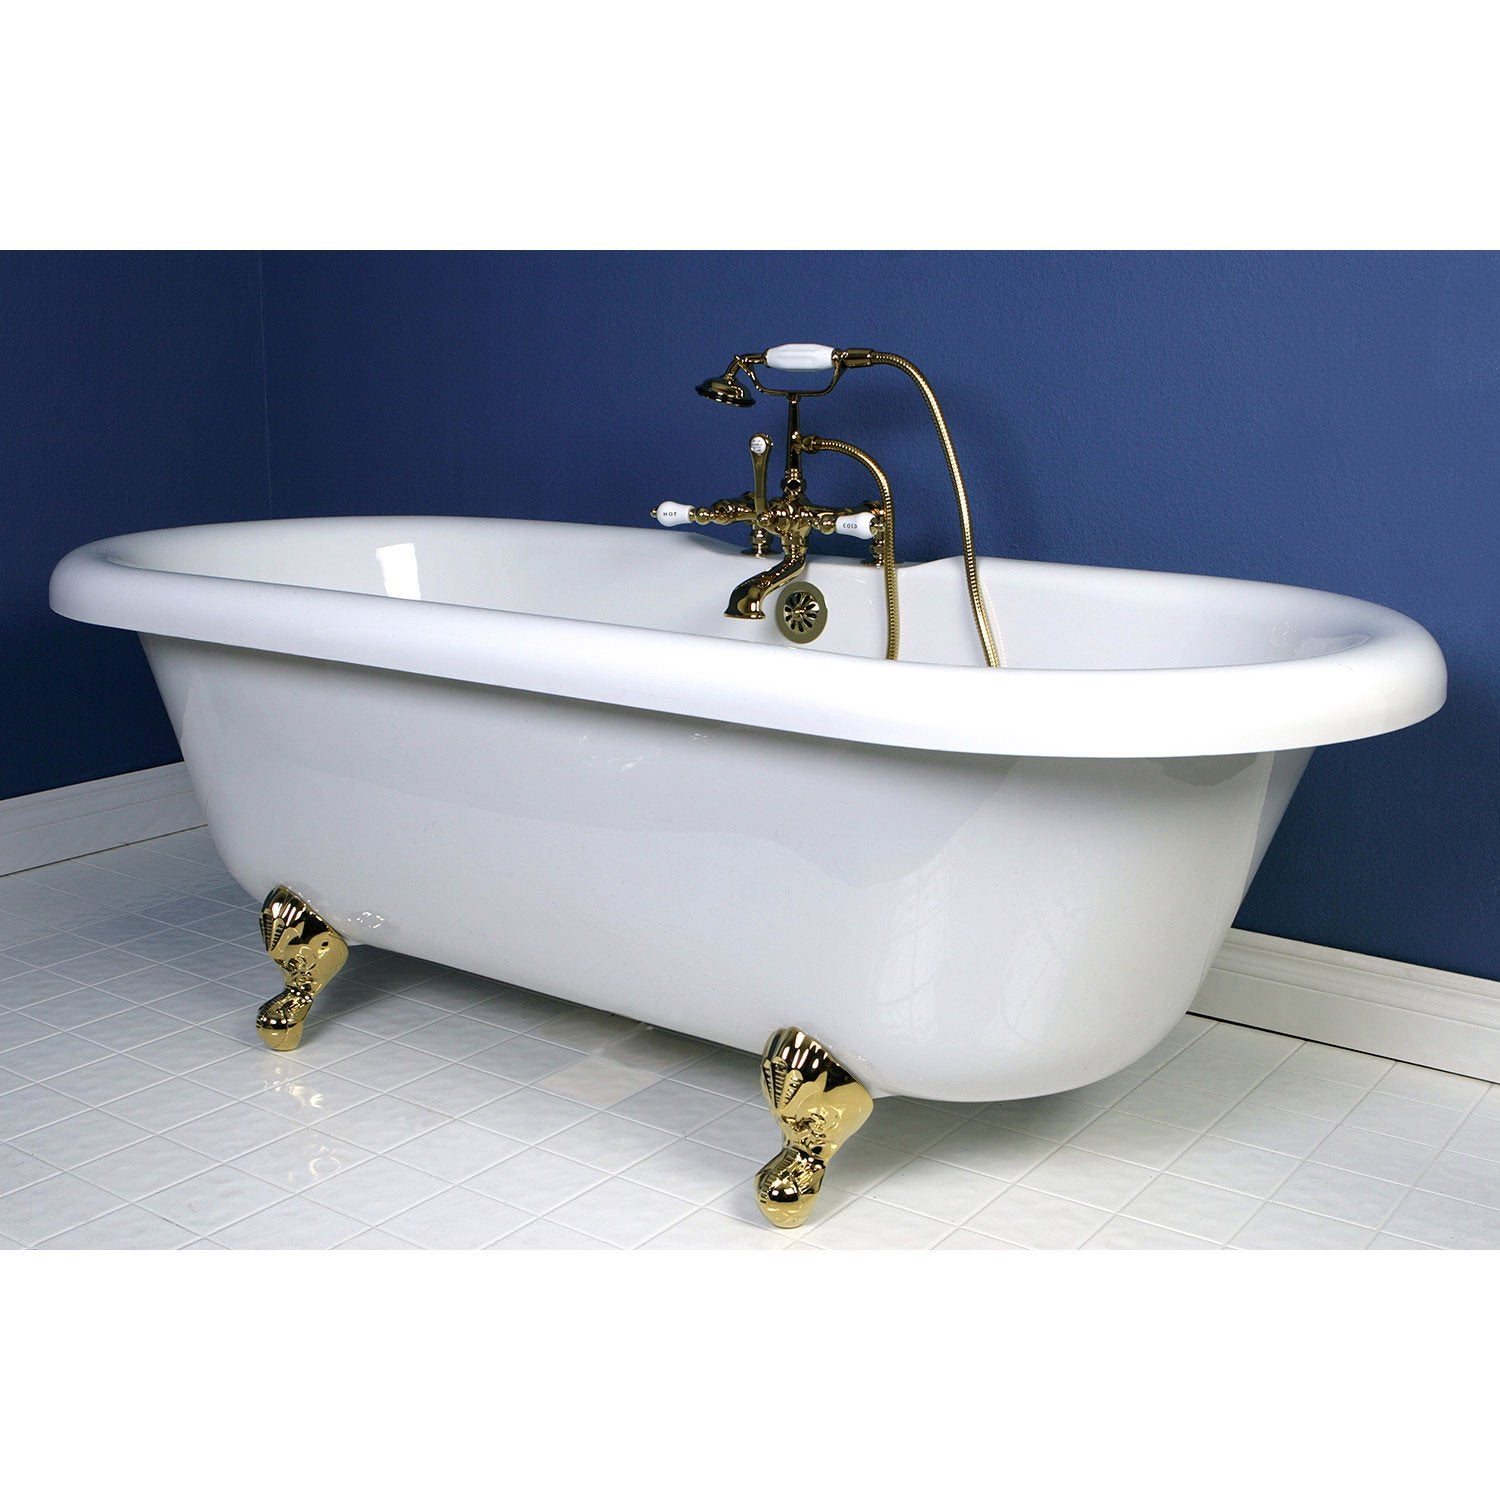 "67"" Acrylic Clawfoot Tub with Polished Brass Tub Faucet & Hardware Package CTP45"